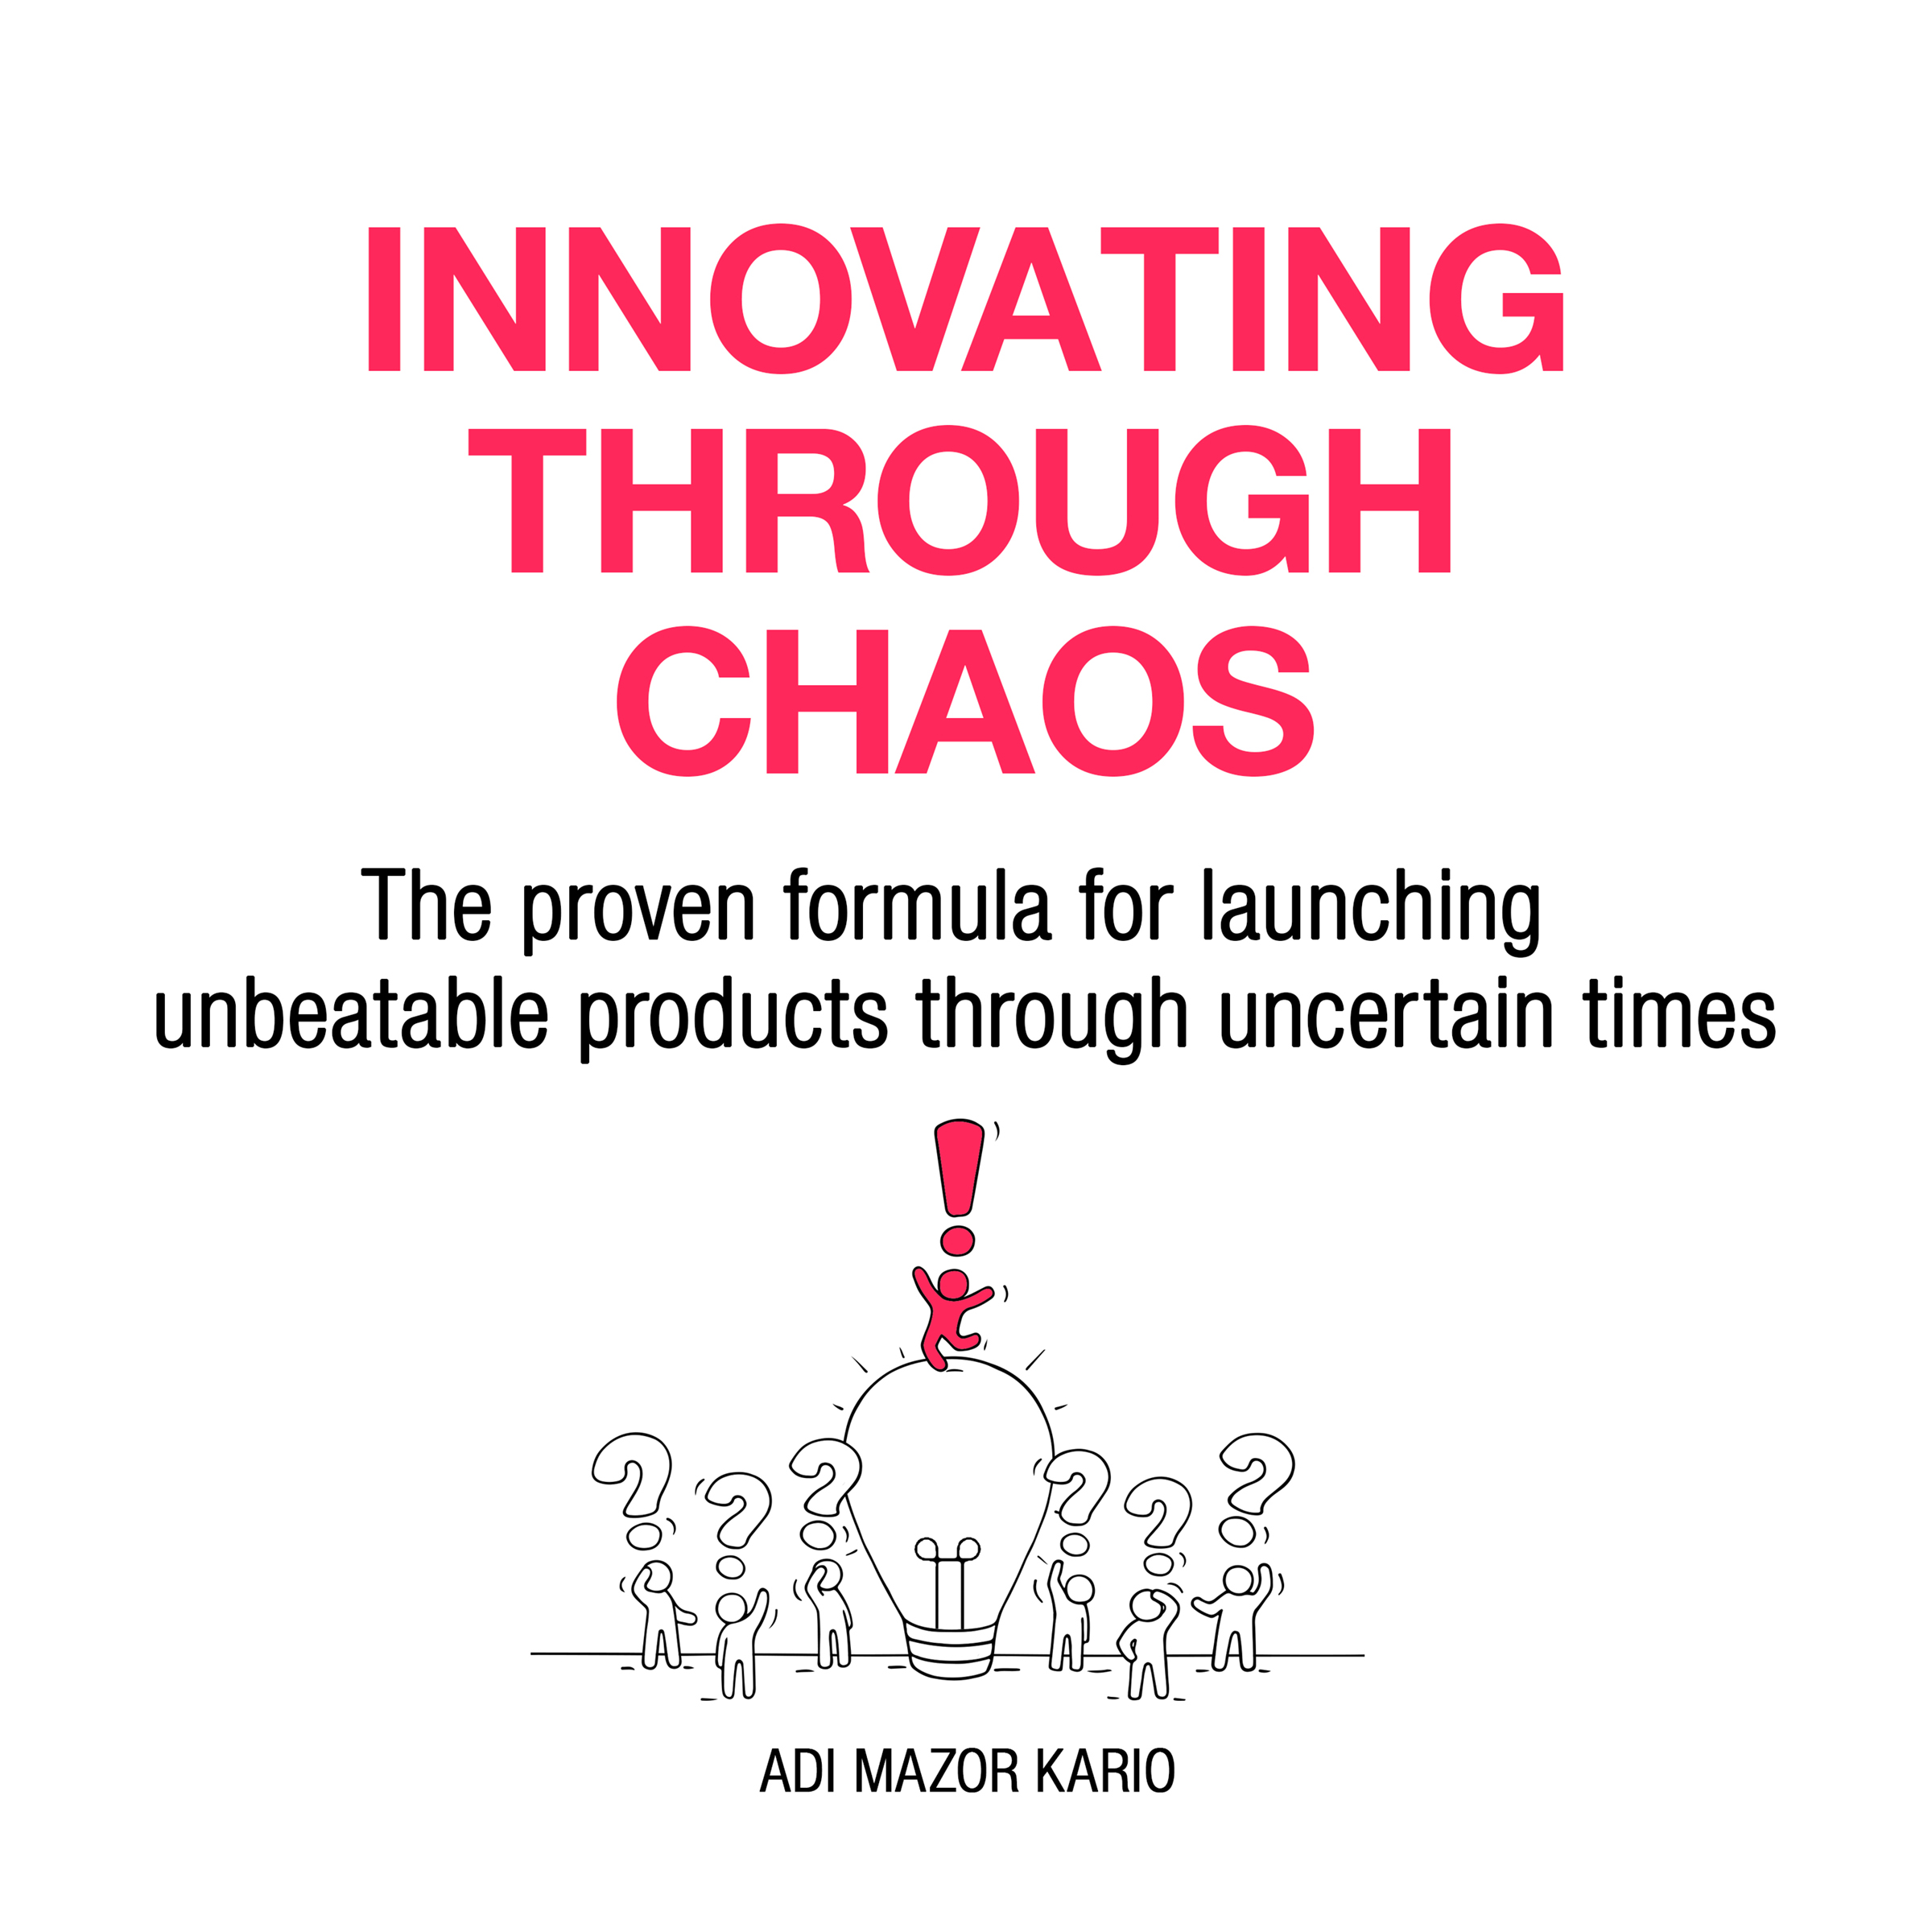 Innovating Through Chaos